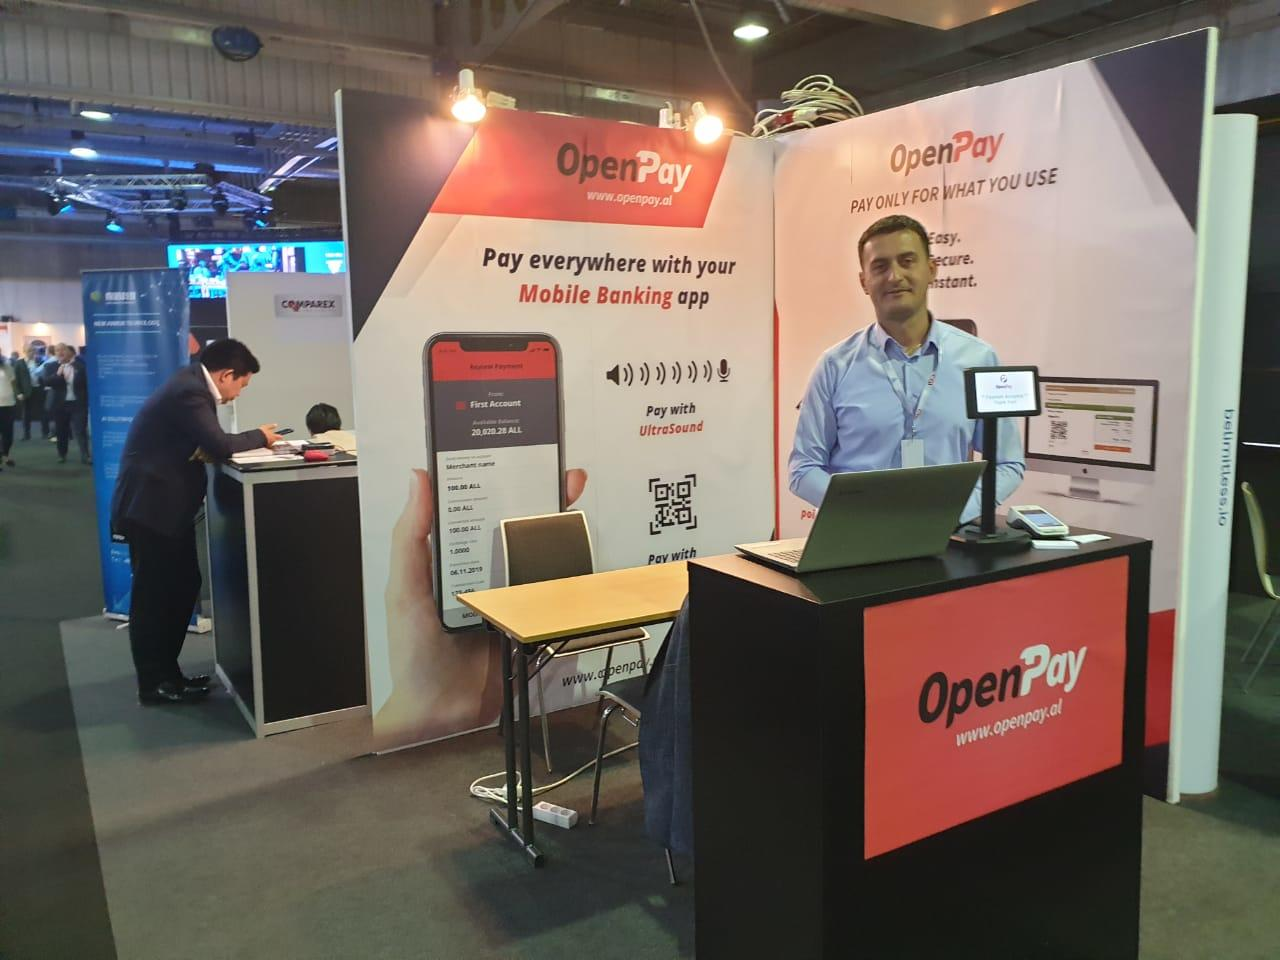 OpenPay – OpenPay Payment System